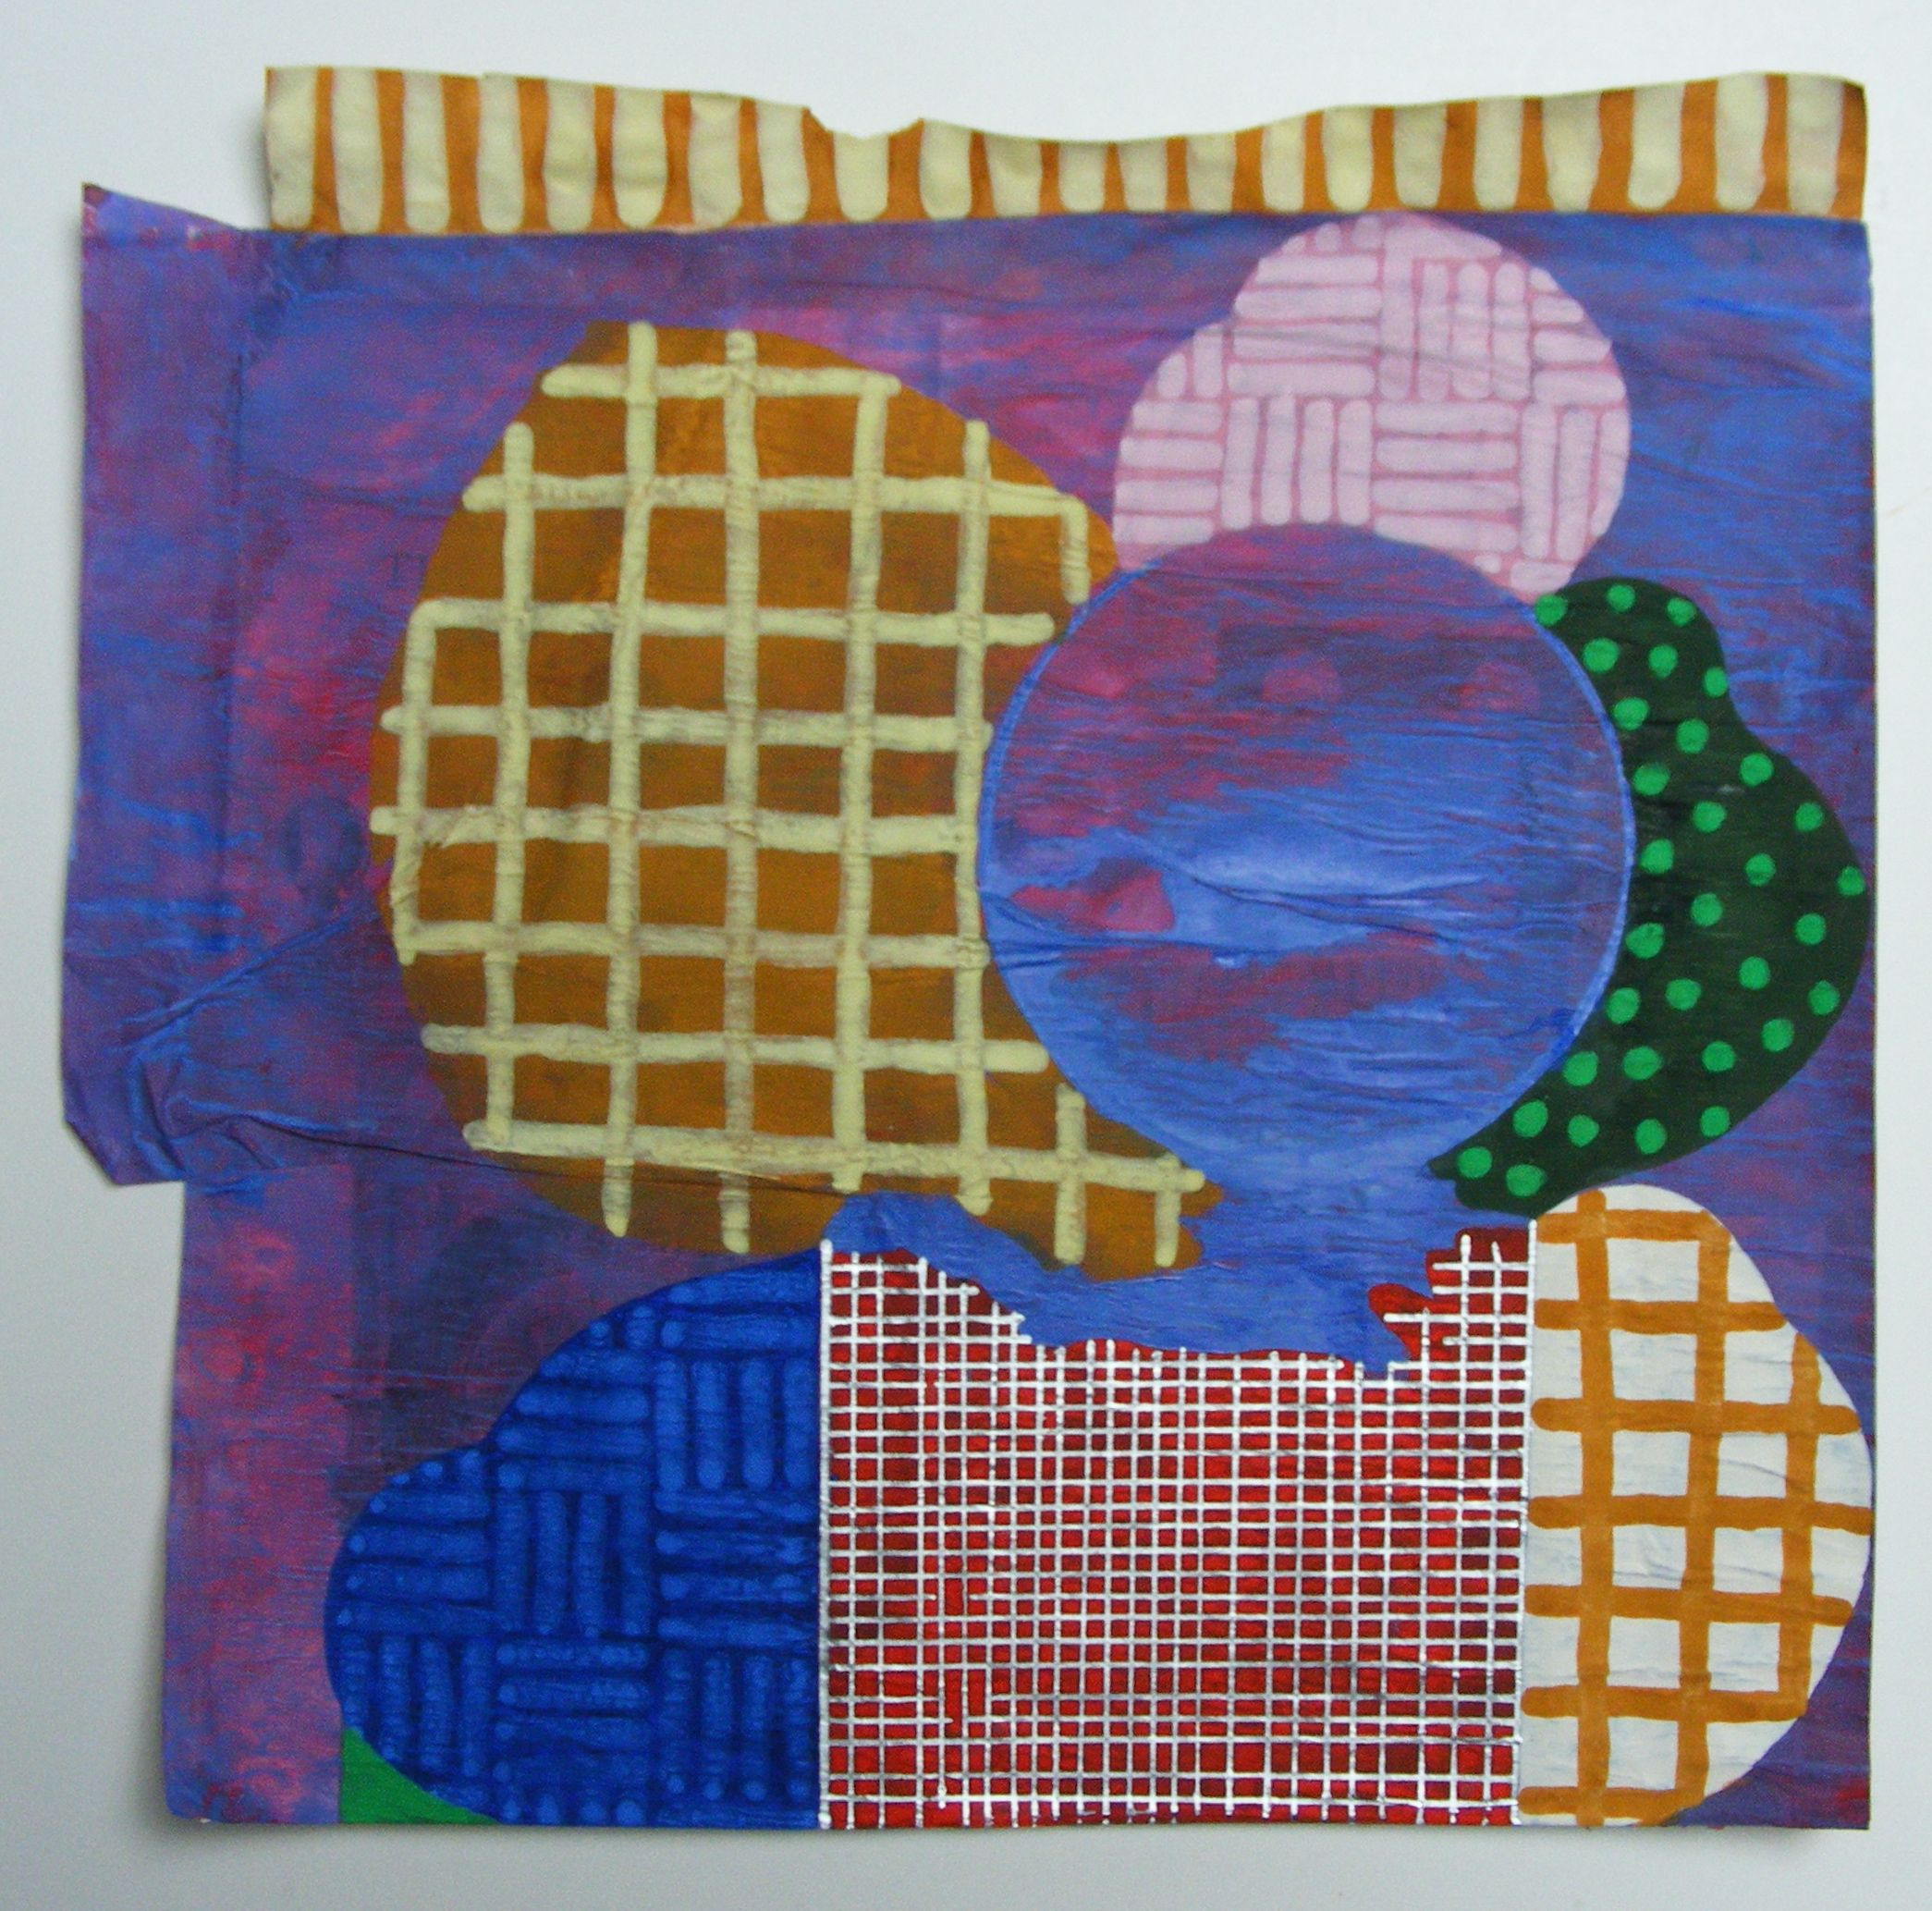 exploration proposal pop art Exploration proposal pop art  exploration proposal i hope to explore the images of comic strips consumerism and symbolism in pop art that have been influenced in our everyday lives and how the mass media, advertising and popular culture are portrayed through pop art.